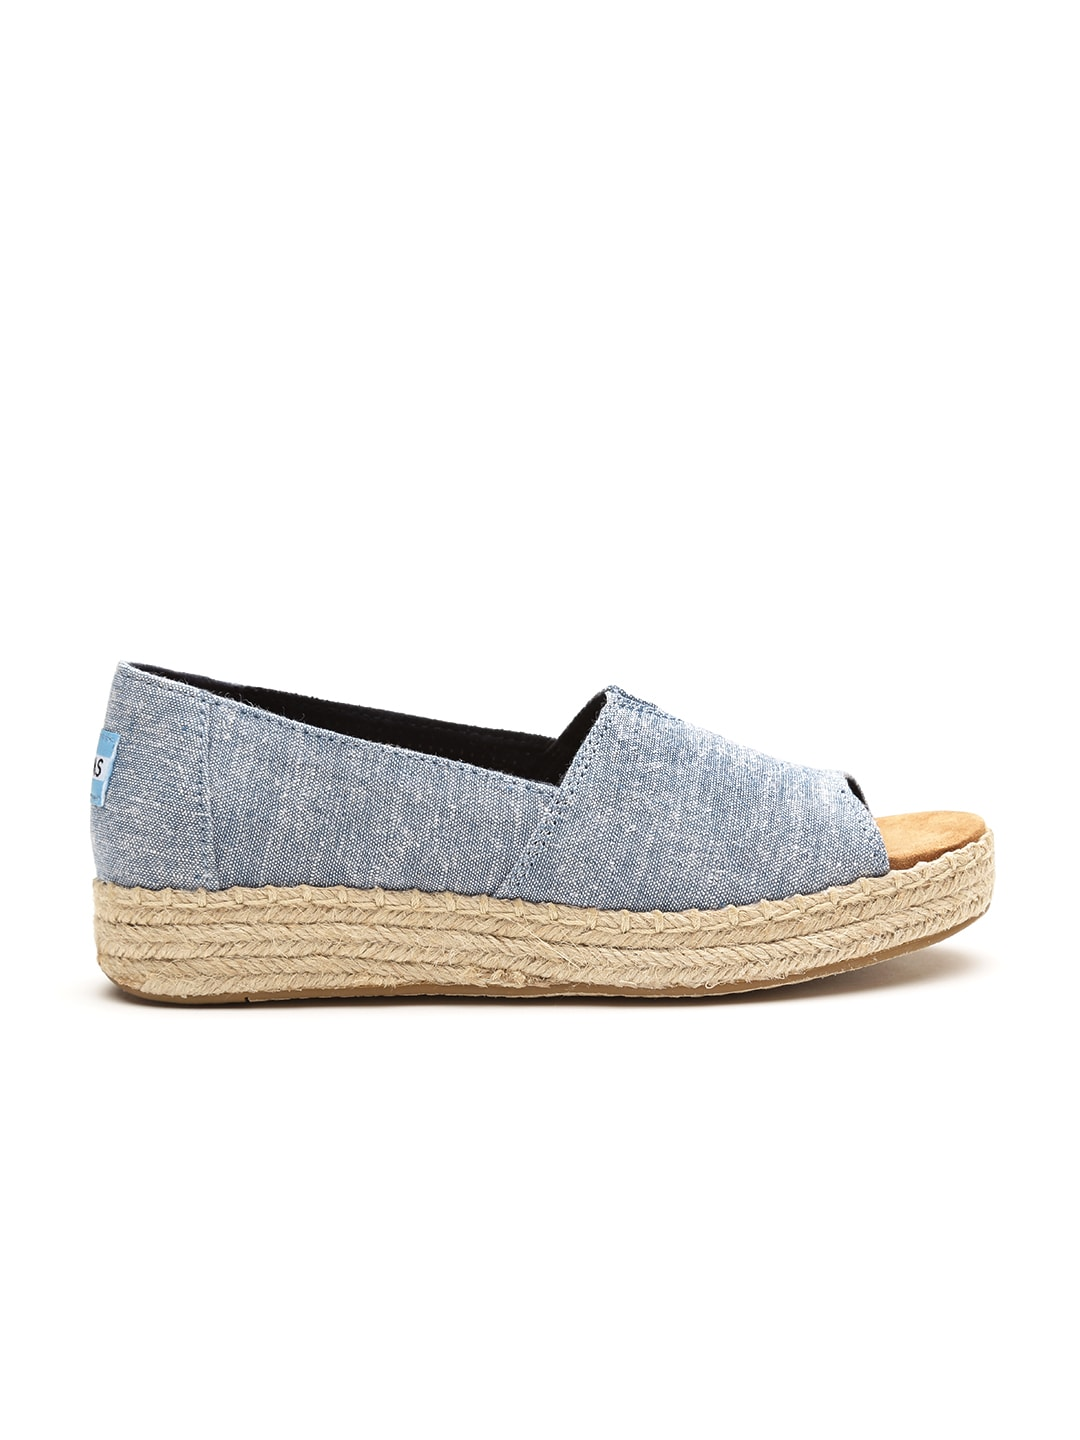 TOMS Women Blue Chambray Peep-Toed Espadrilles image